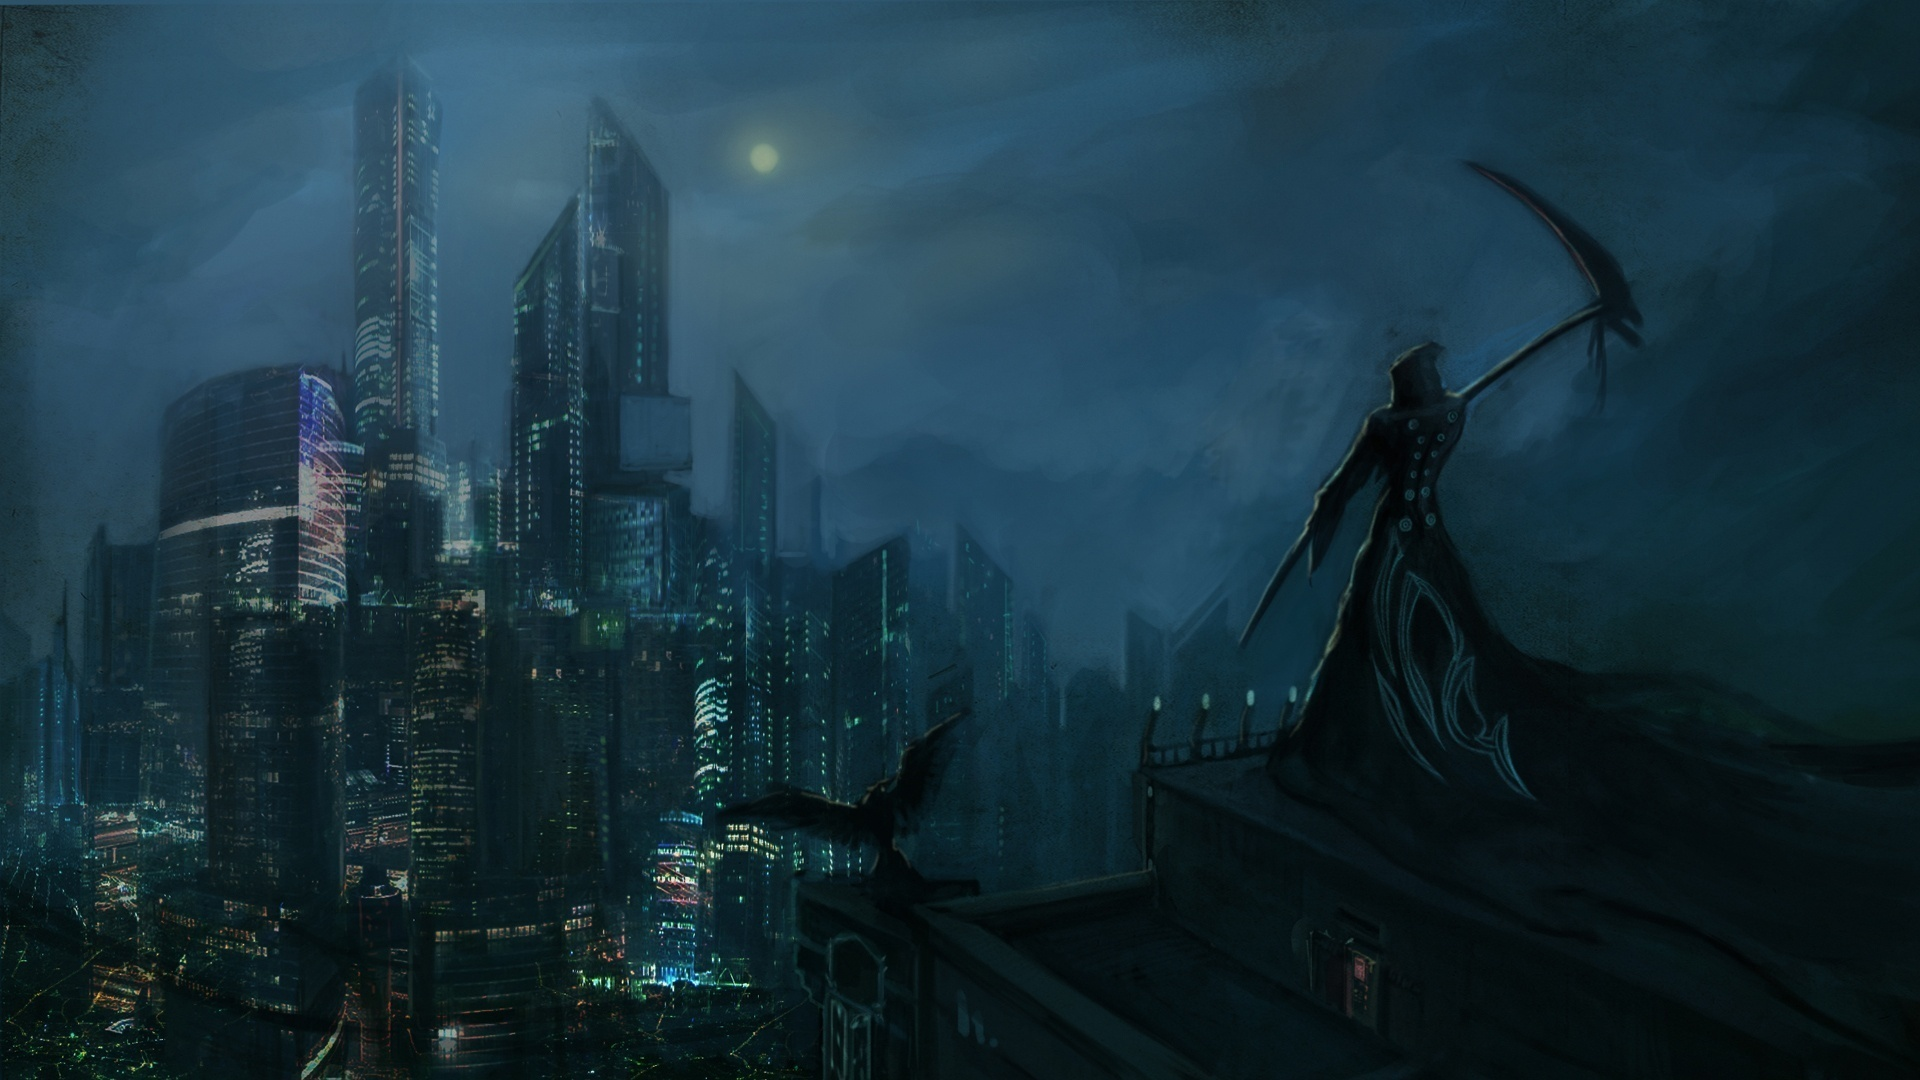 Dark Grim Reaper horror skeletons skull creepy cities night wallpaper 1920x1080